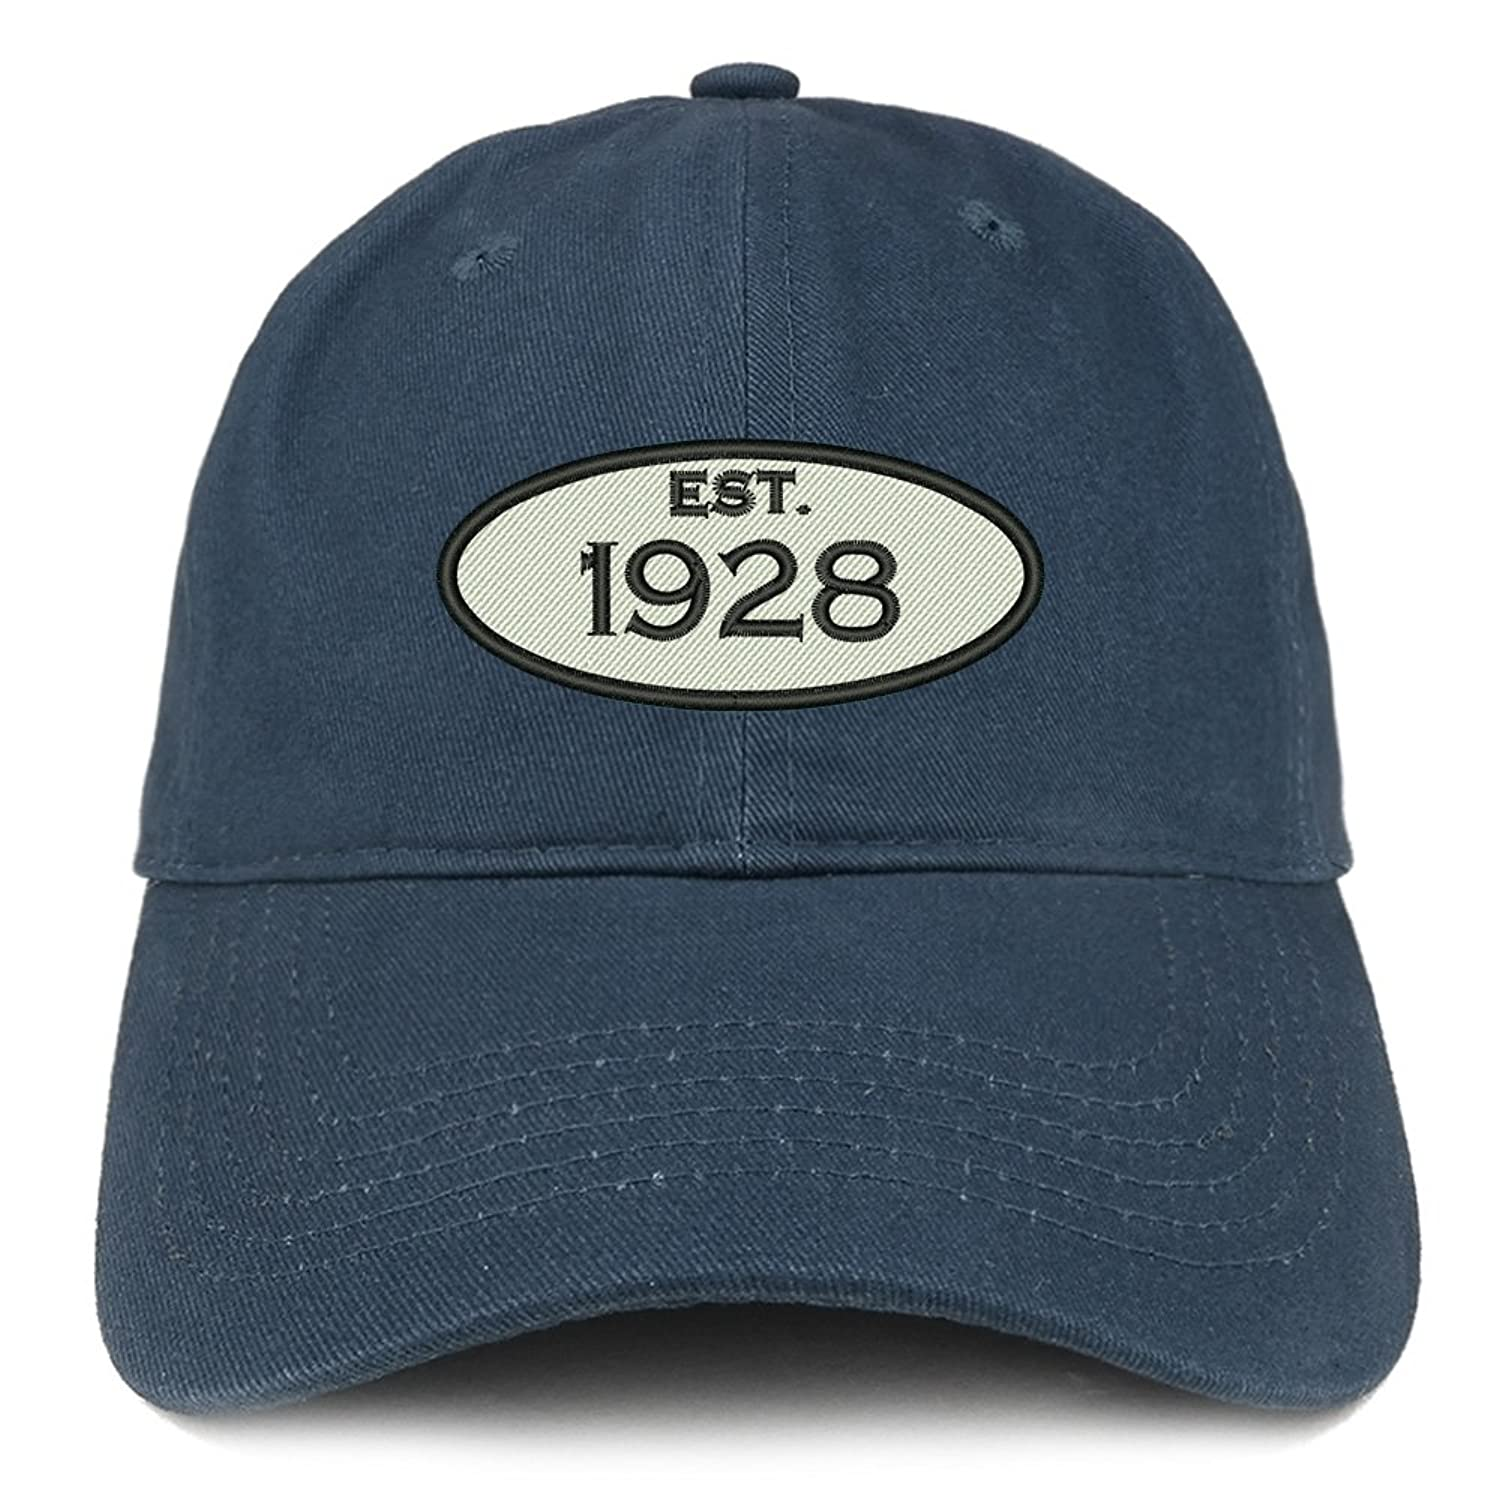 Trendy Apparel Shop Established 1928 Embroidered 90th Birthday Gift Soft Crown Cotton Cap